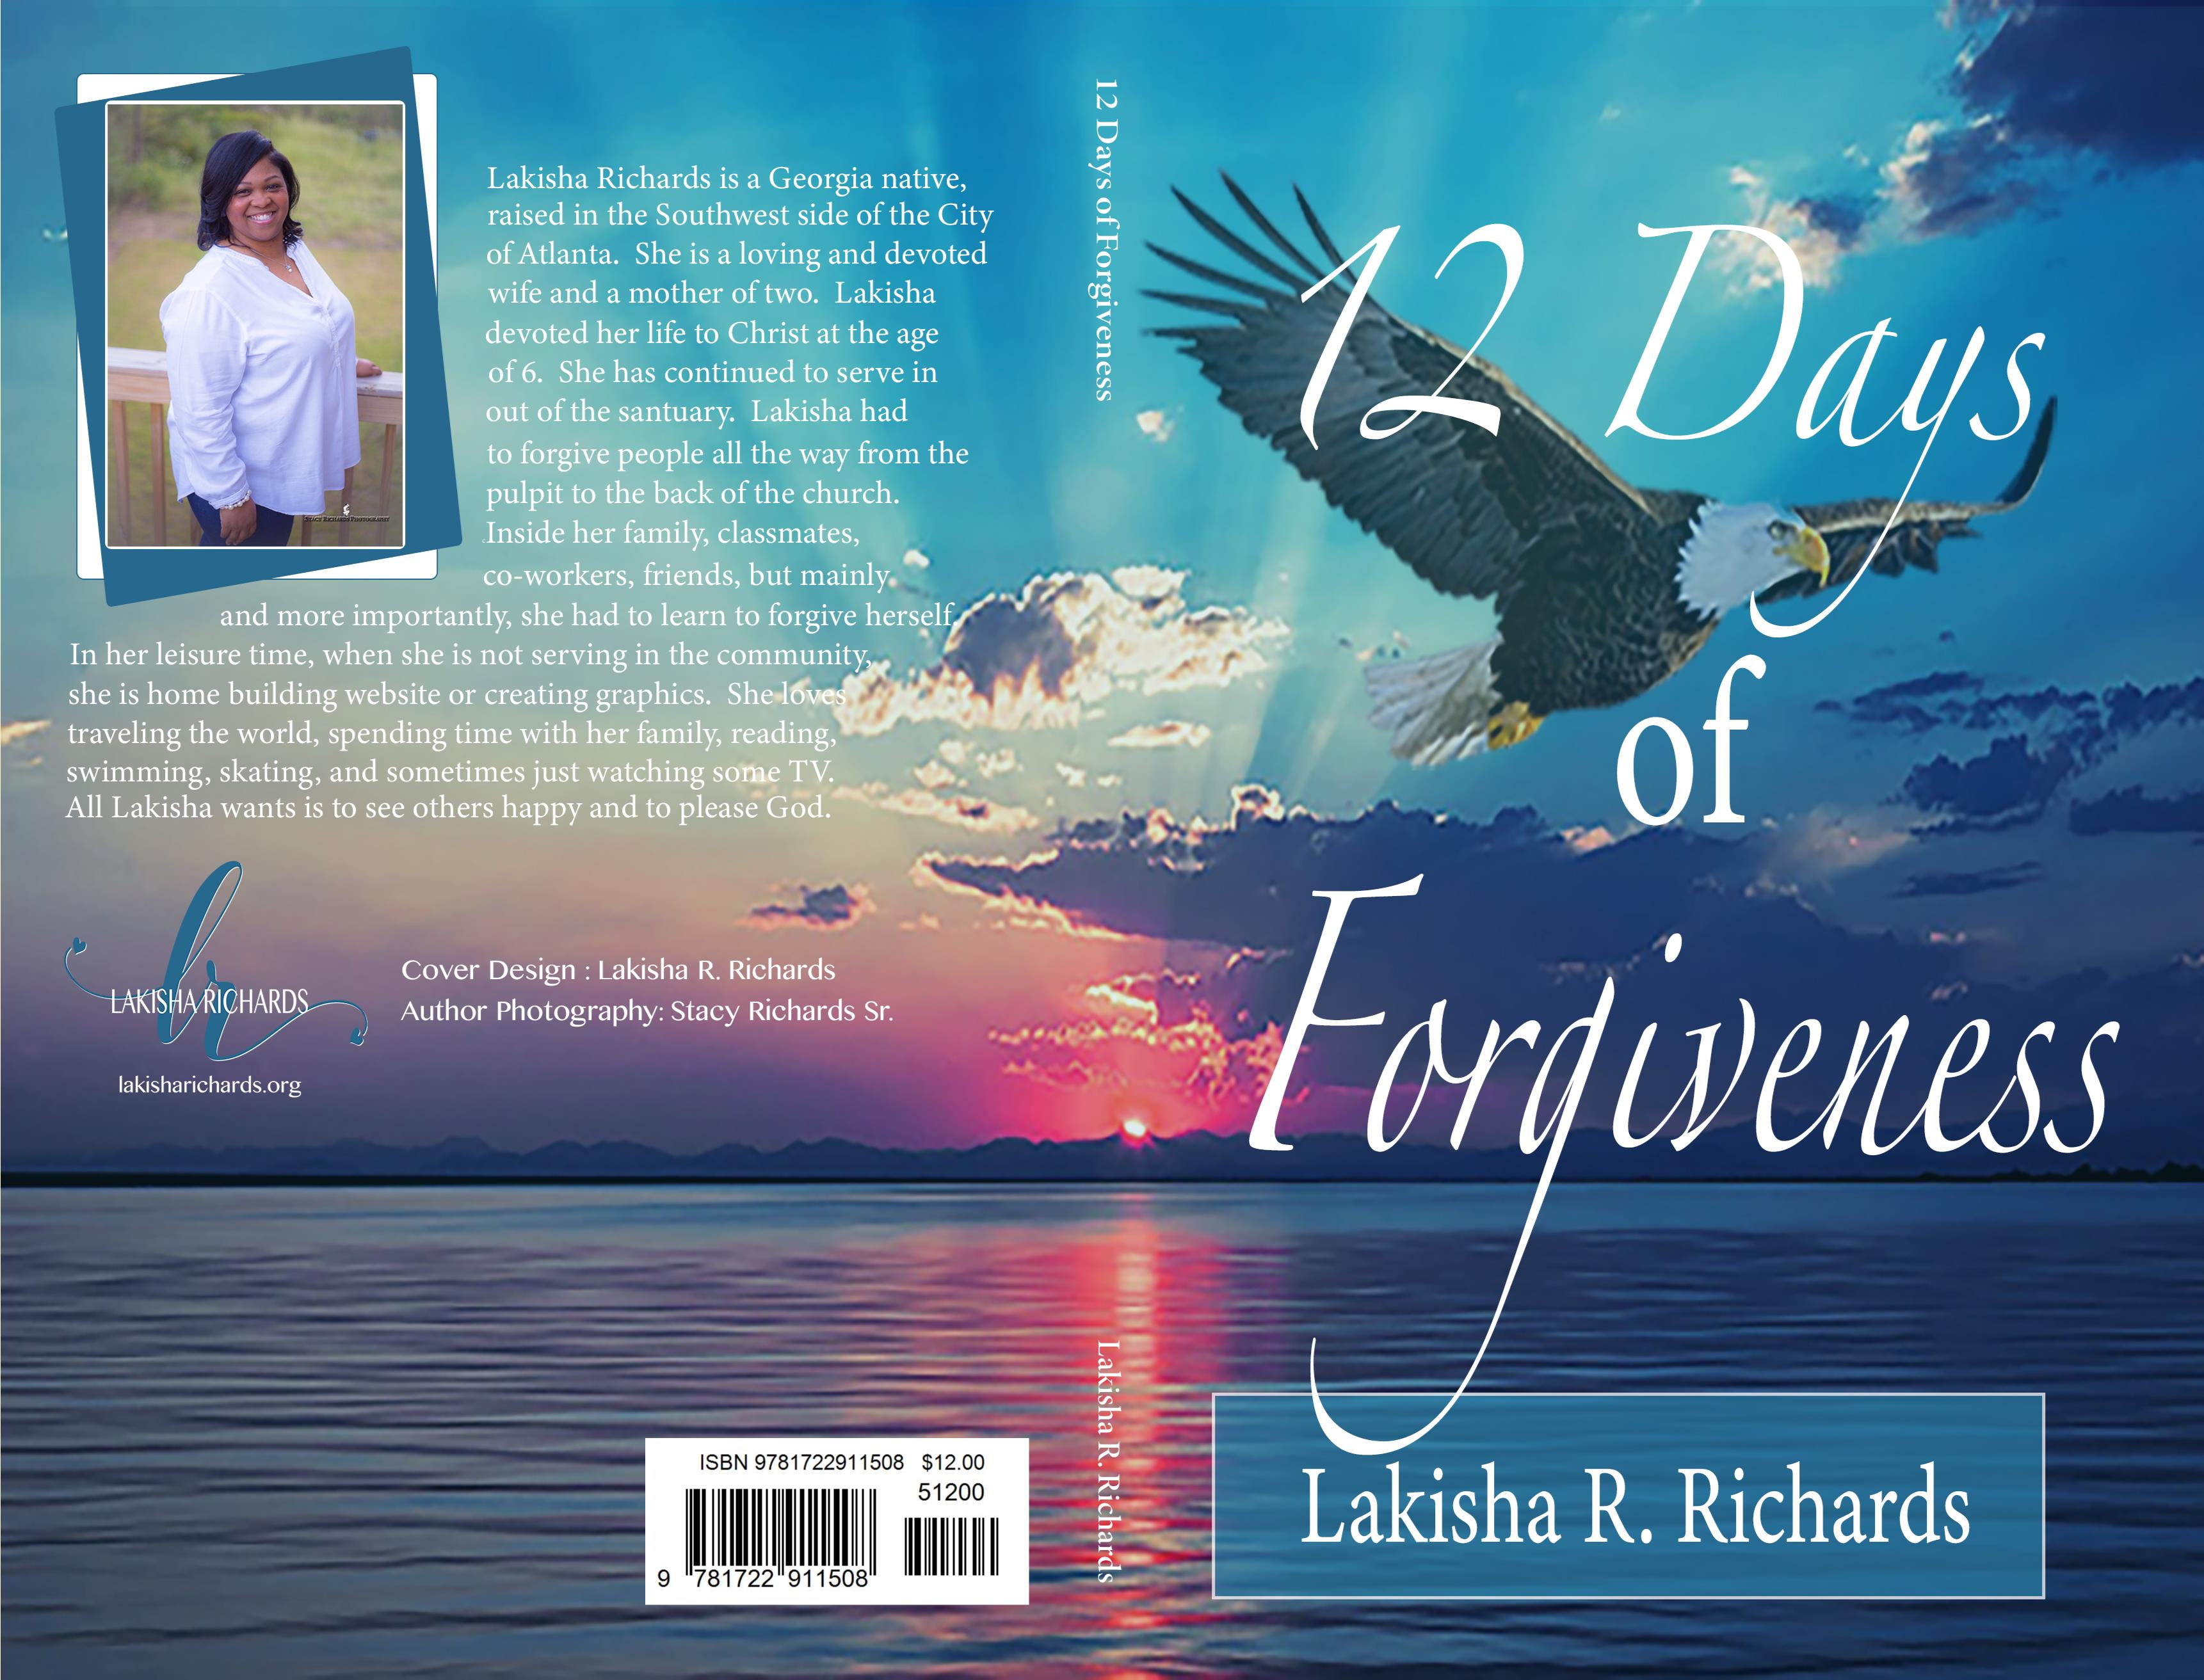 12 Days of Forgiveness cover image